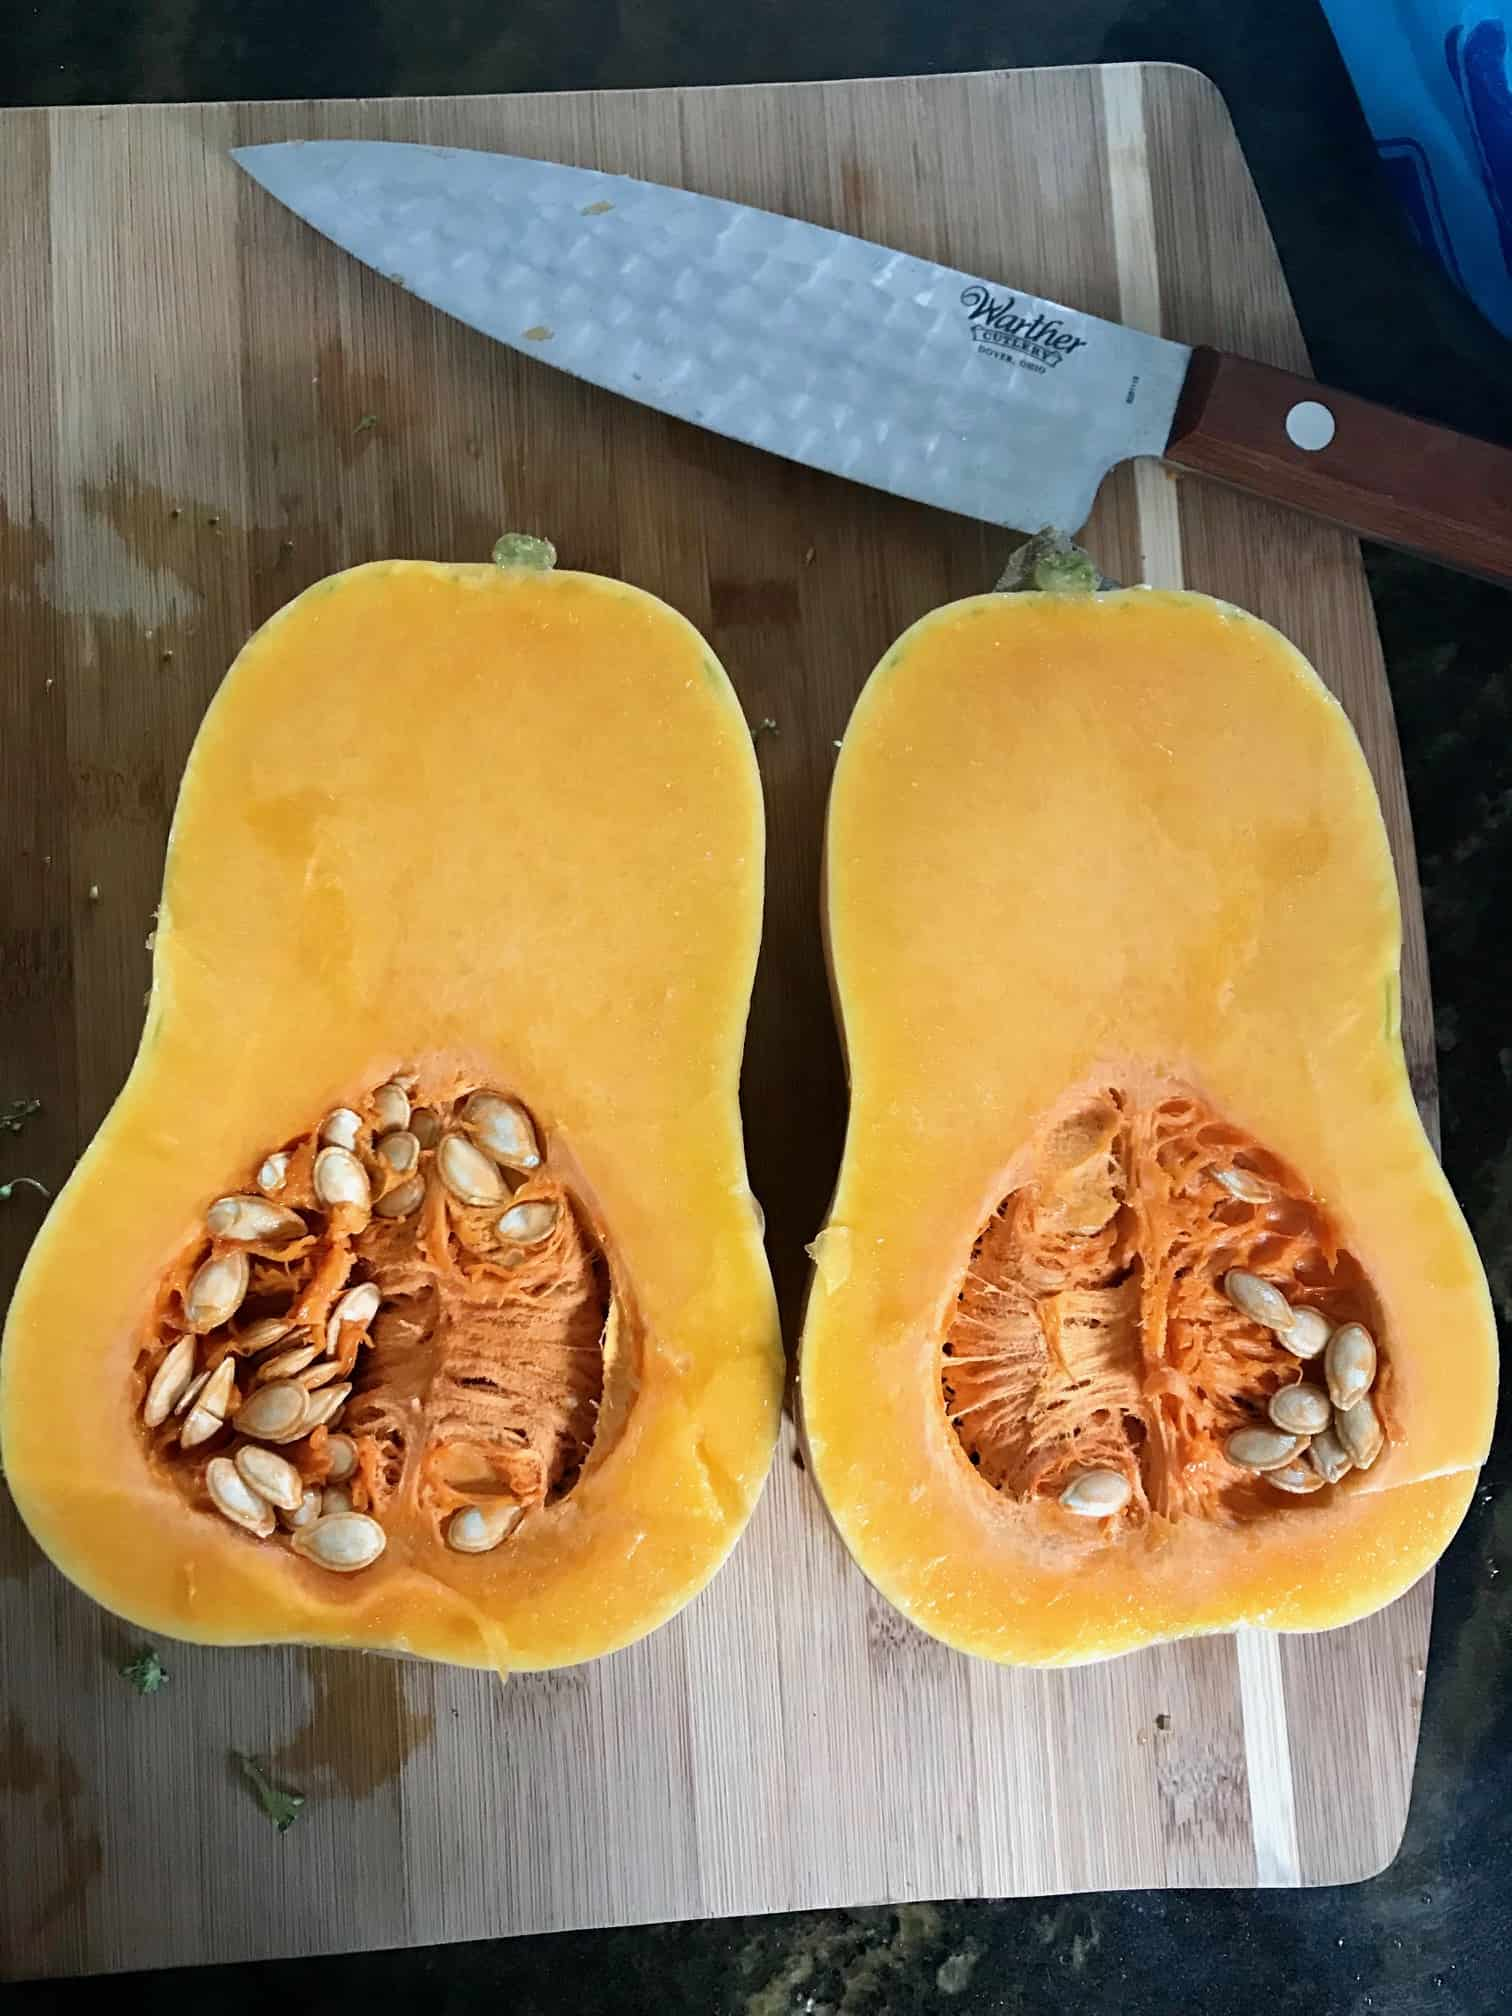 Butternut squash on cutting board cut in half